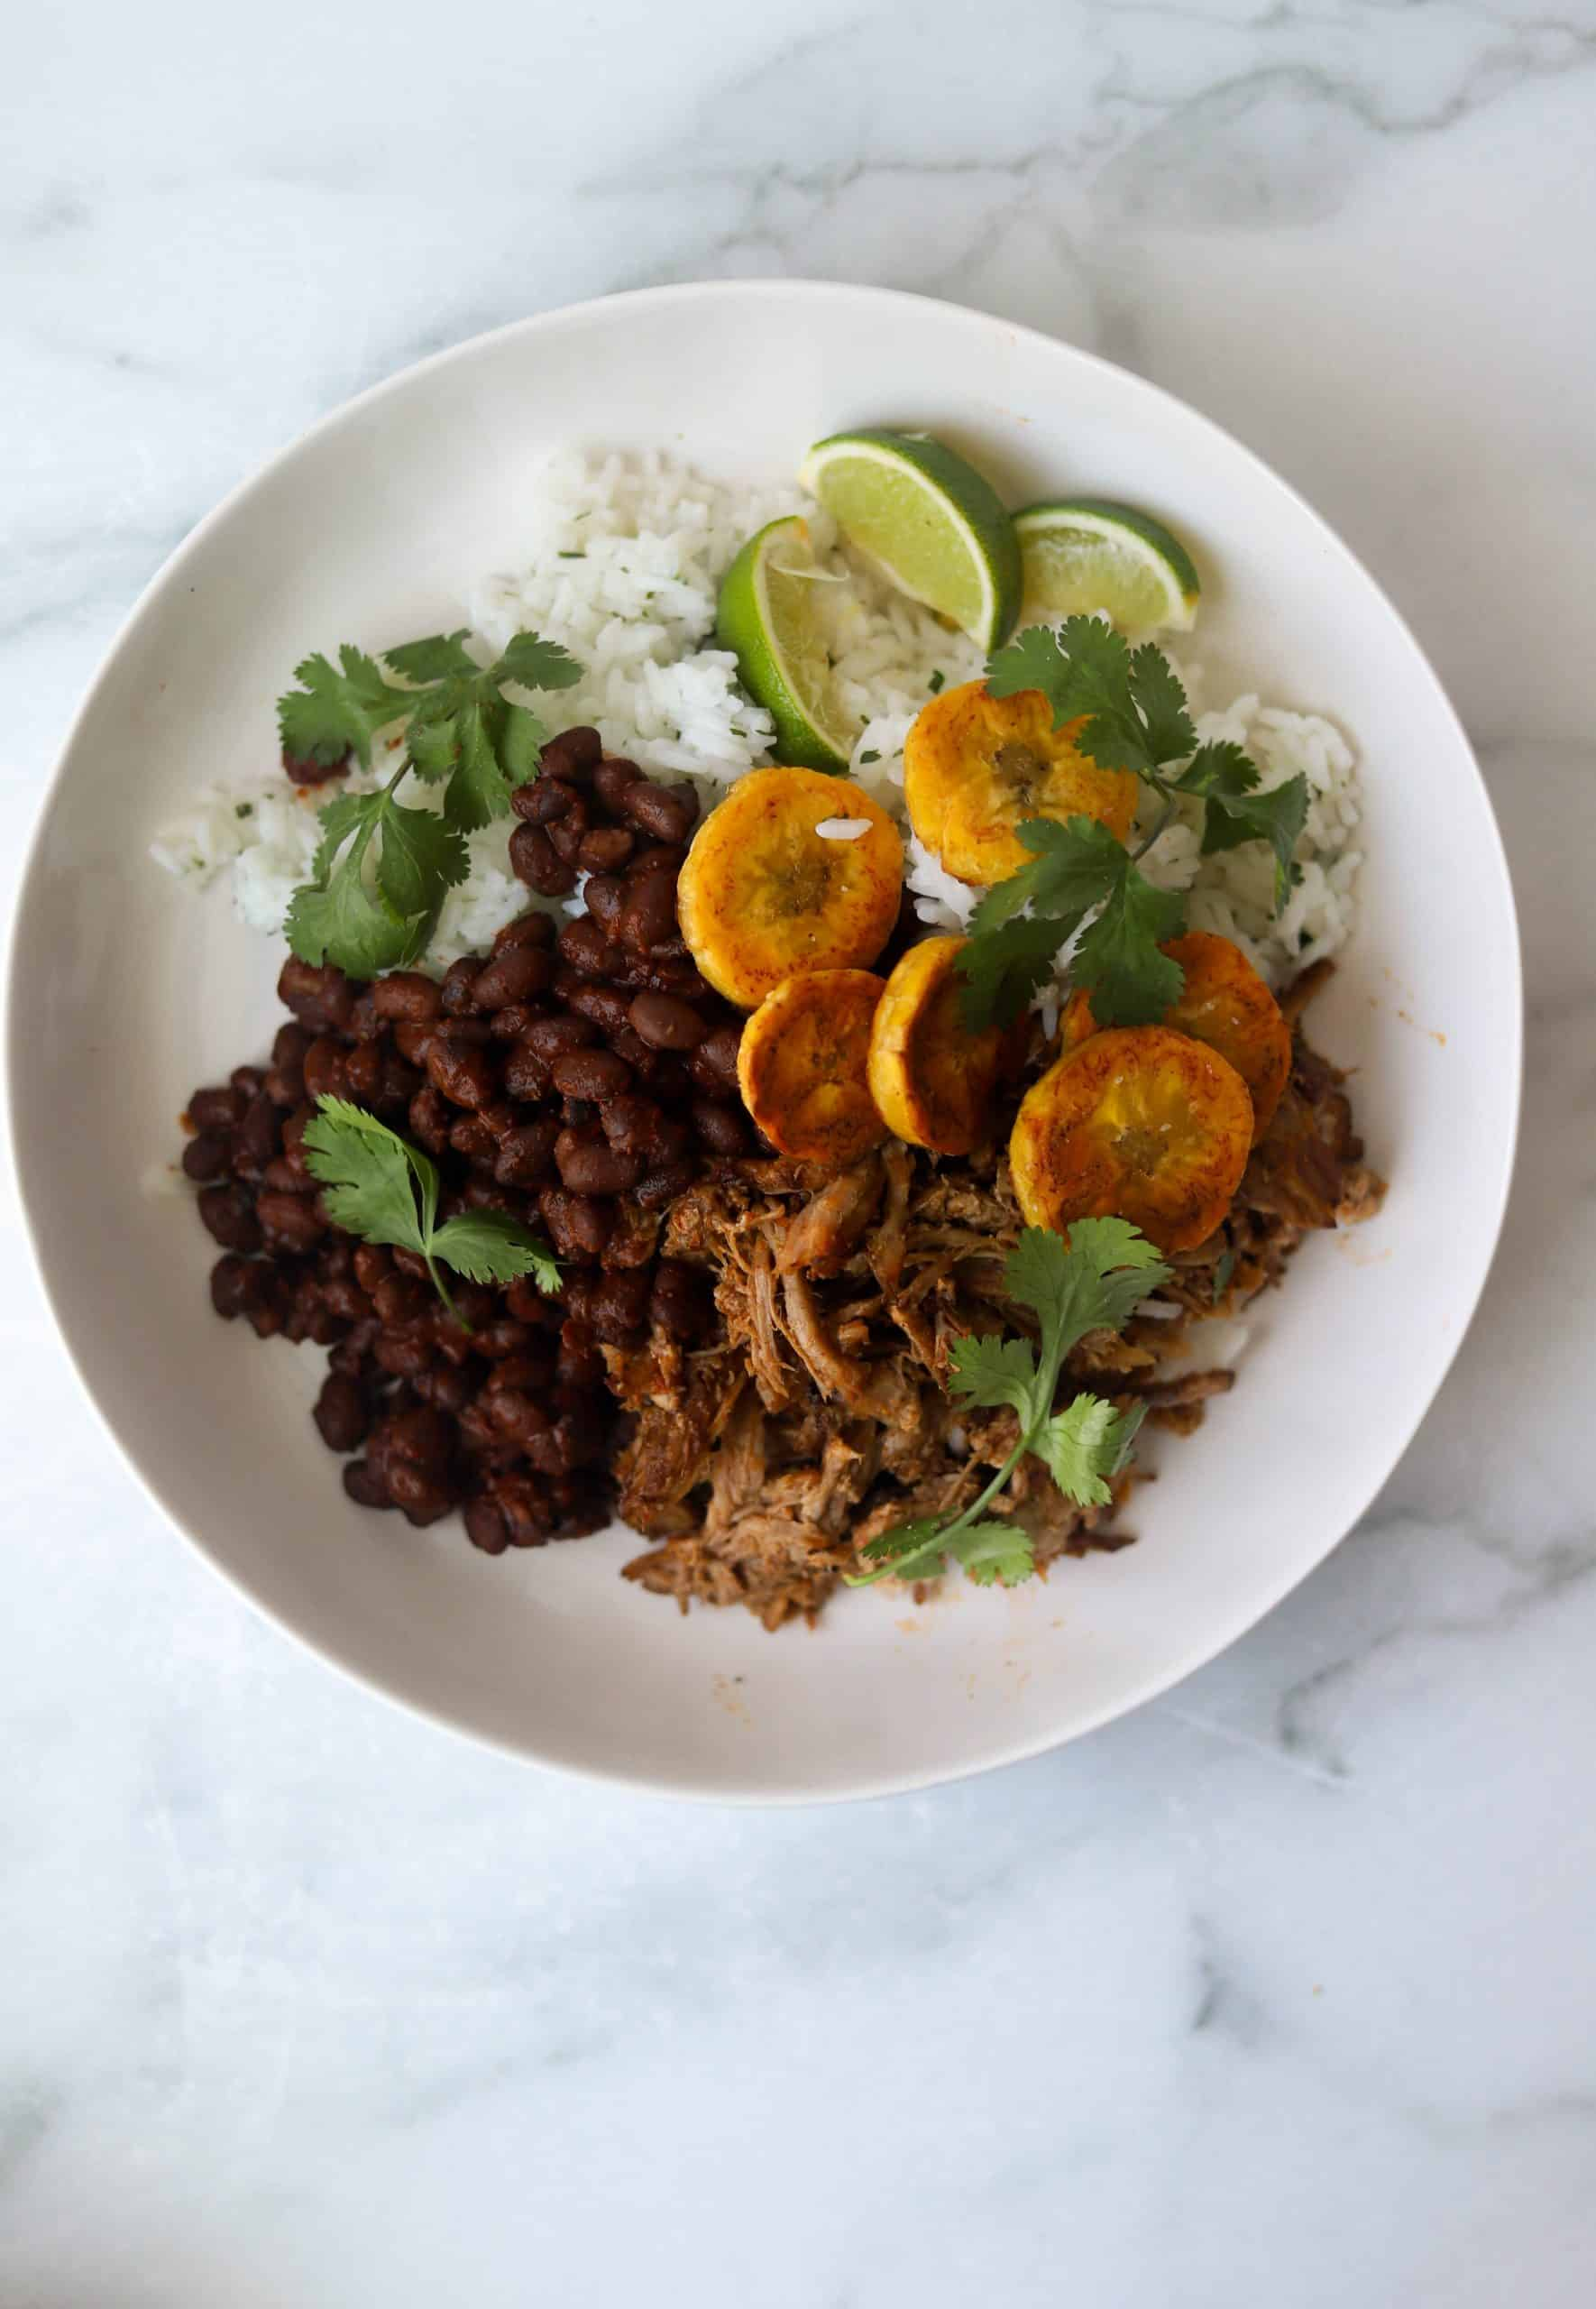 A large white bowl filled with cuban pork, rice, black beans and fried plantains.